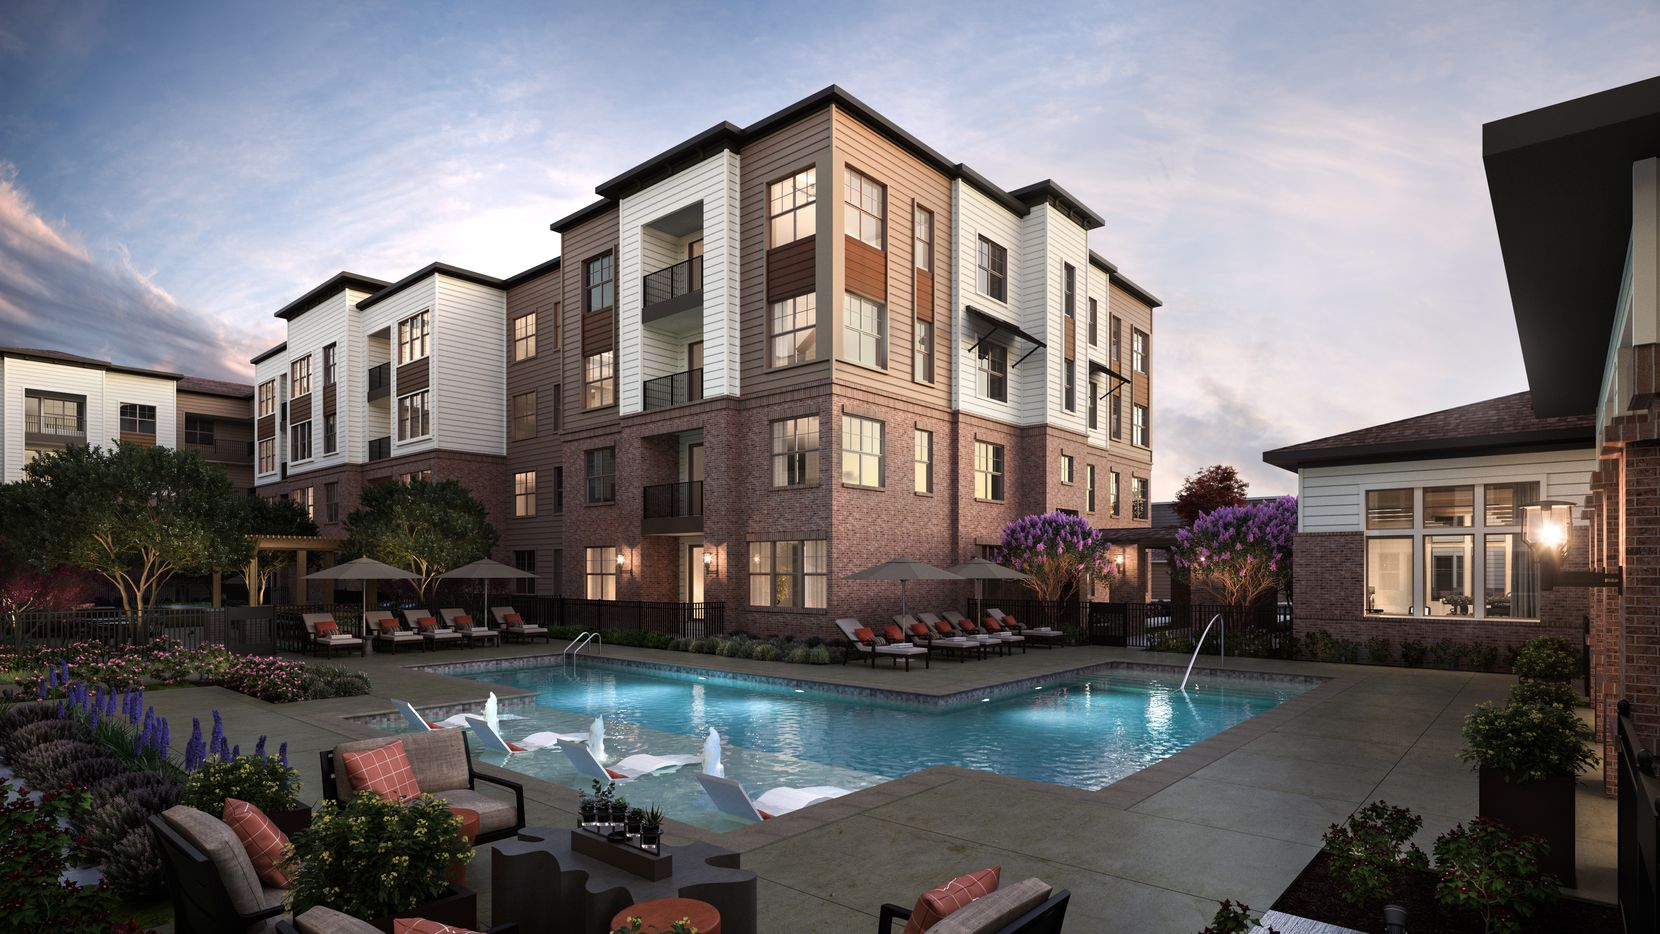 Album Keller Ranch, a 55-and-older community with 180 apartments, has begun leasing in Keller.